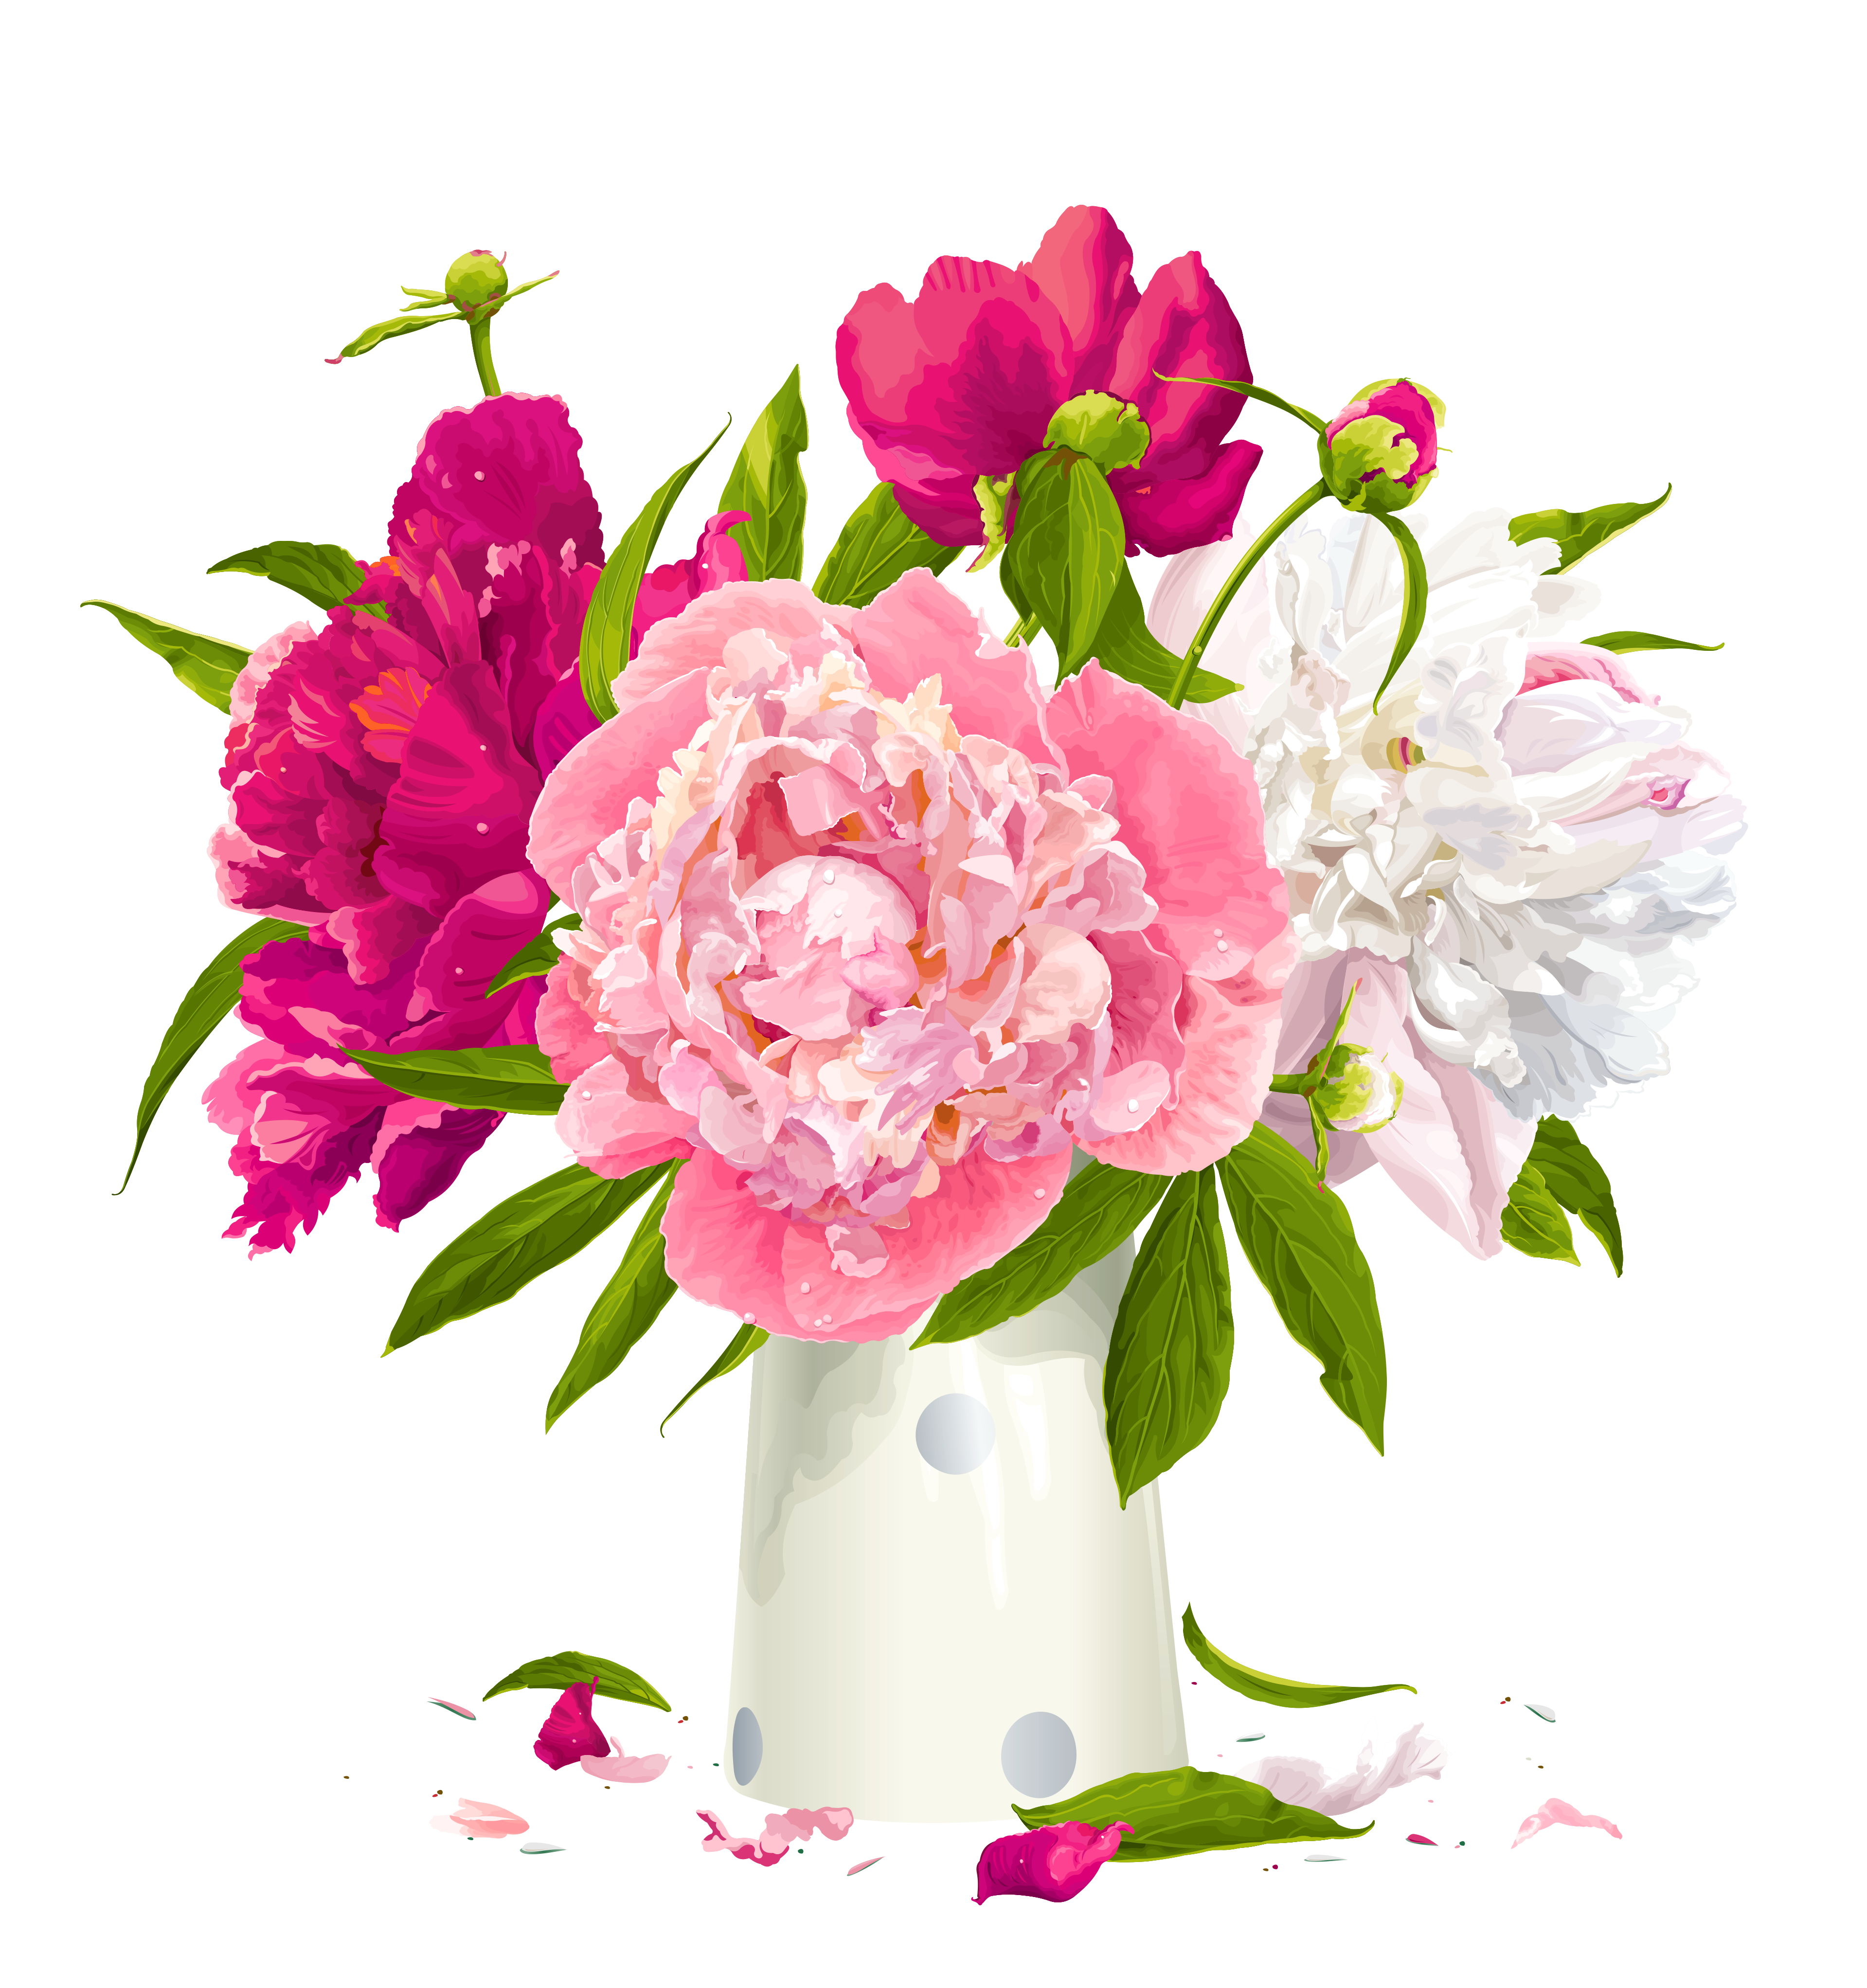 Vase with Peonies Clipart.